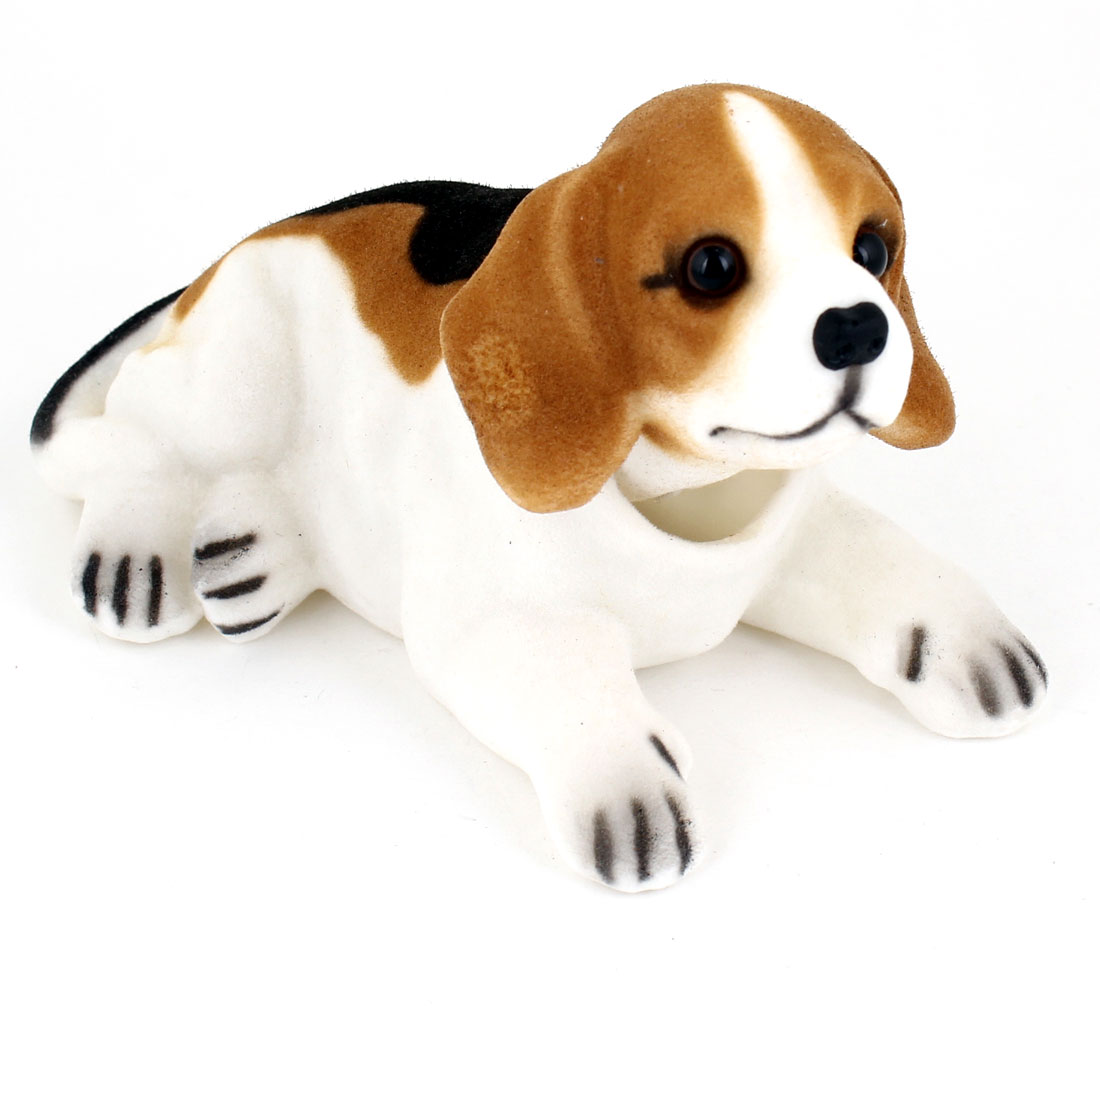 Car Decoration Bobbing Head Beagle Shaped Nodding Dog Black White Brown